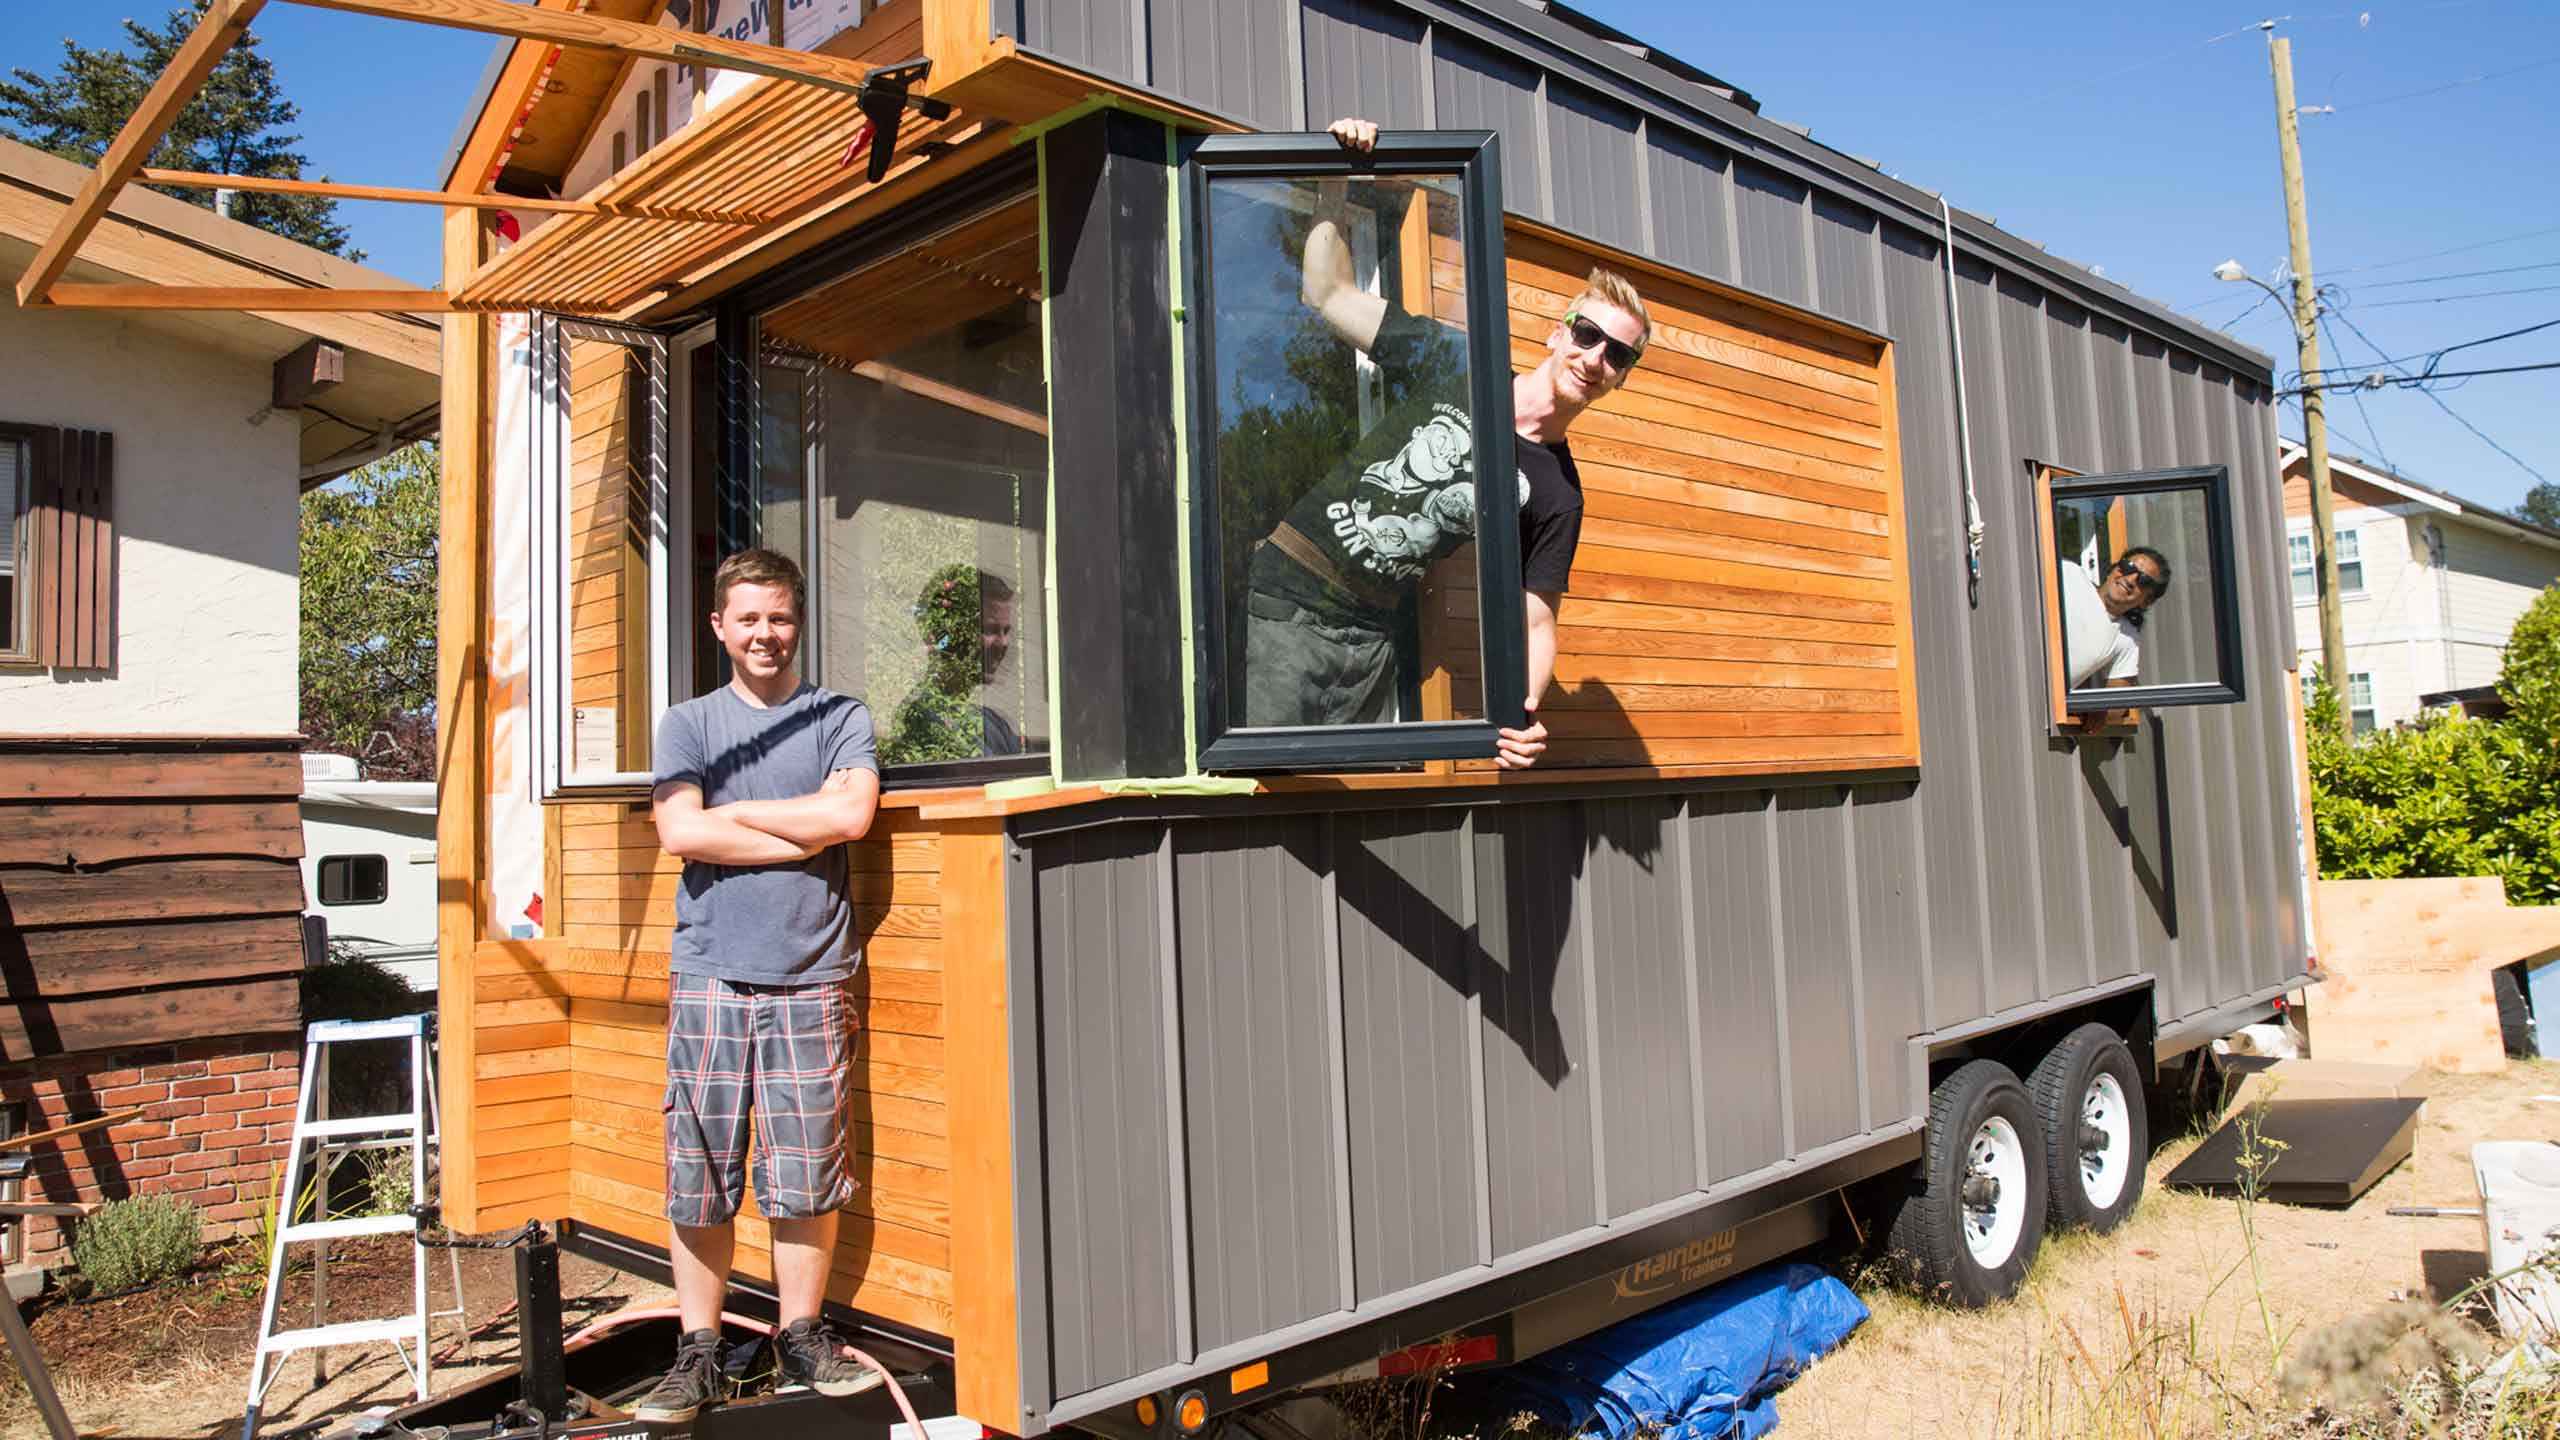 From left: Douglas Peterson-Hui, Daniel Sobieraj and Gregorio Jimenez with their completed tiny home. PHOTO COURTESY JACOB ZINN